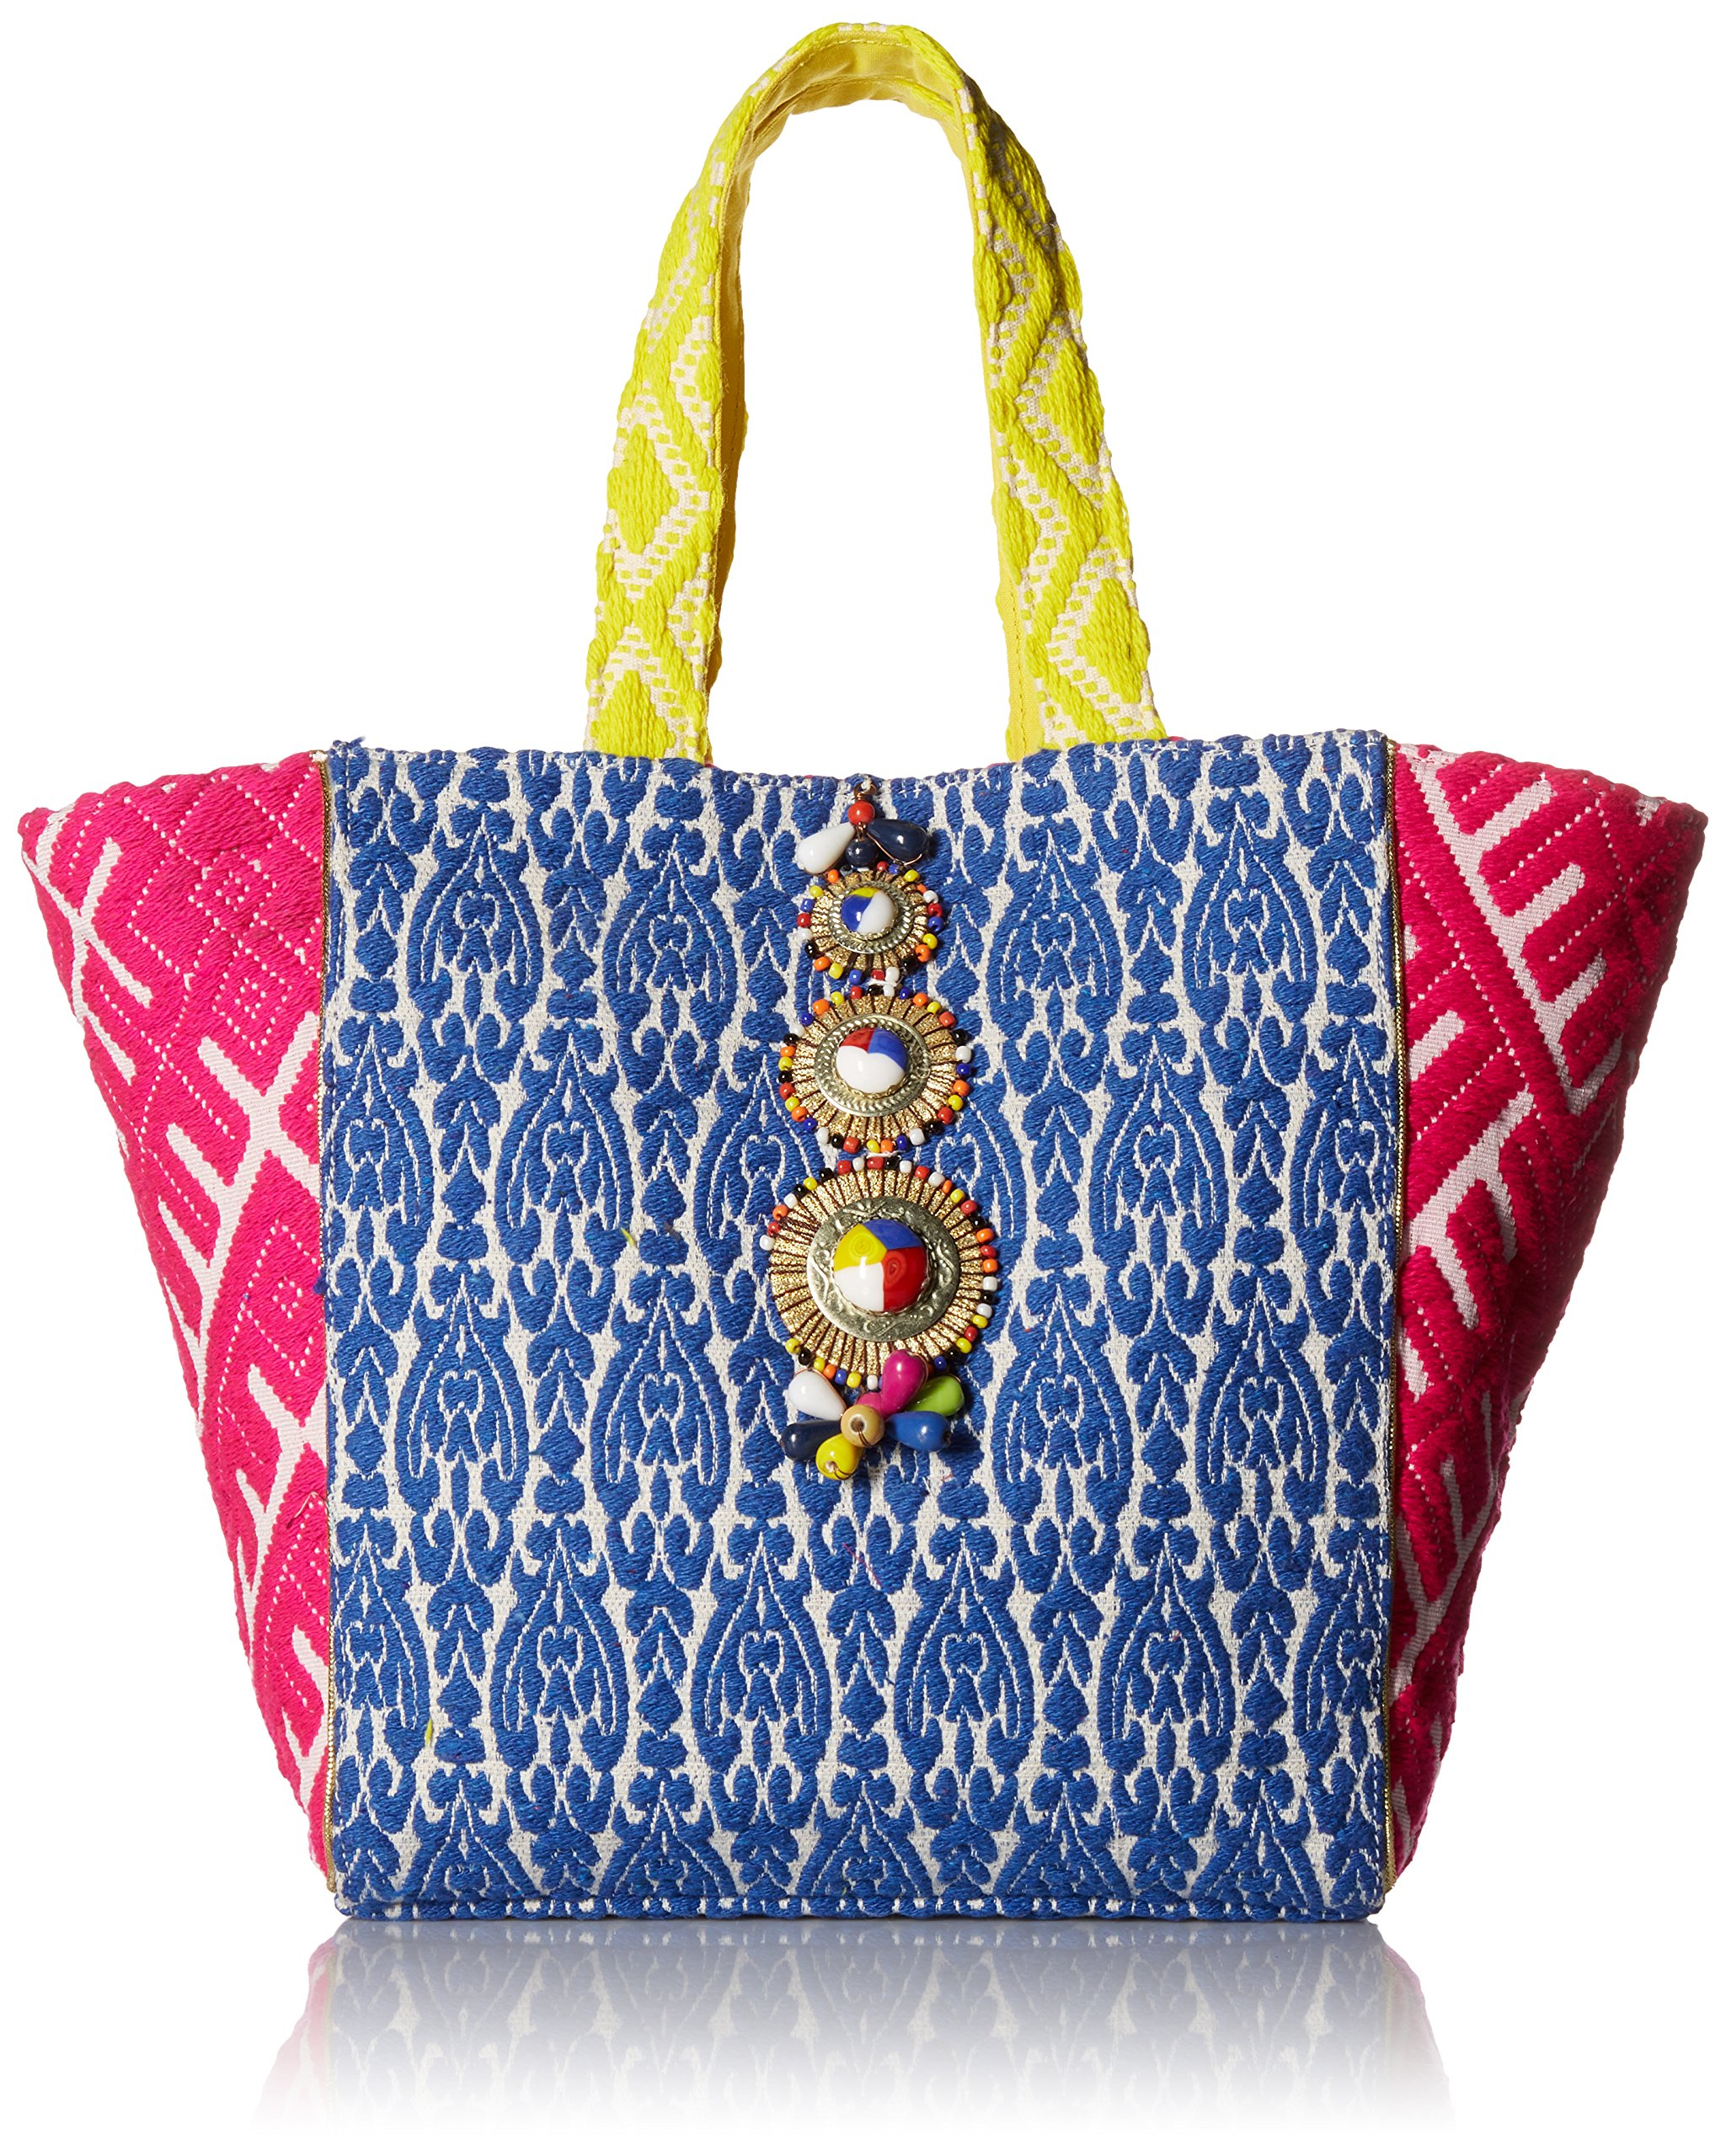 Steve Madden Zena Tribal Geometric Colored Bohemian Fabric Tote Shoulder Beach Handbag, Multi